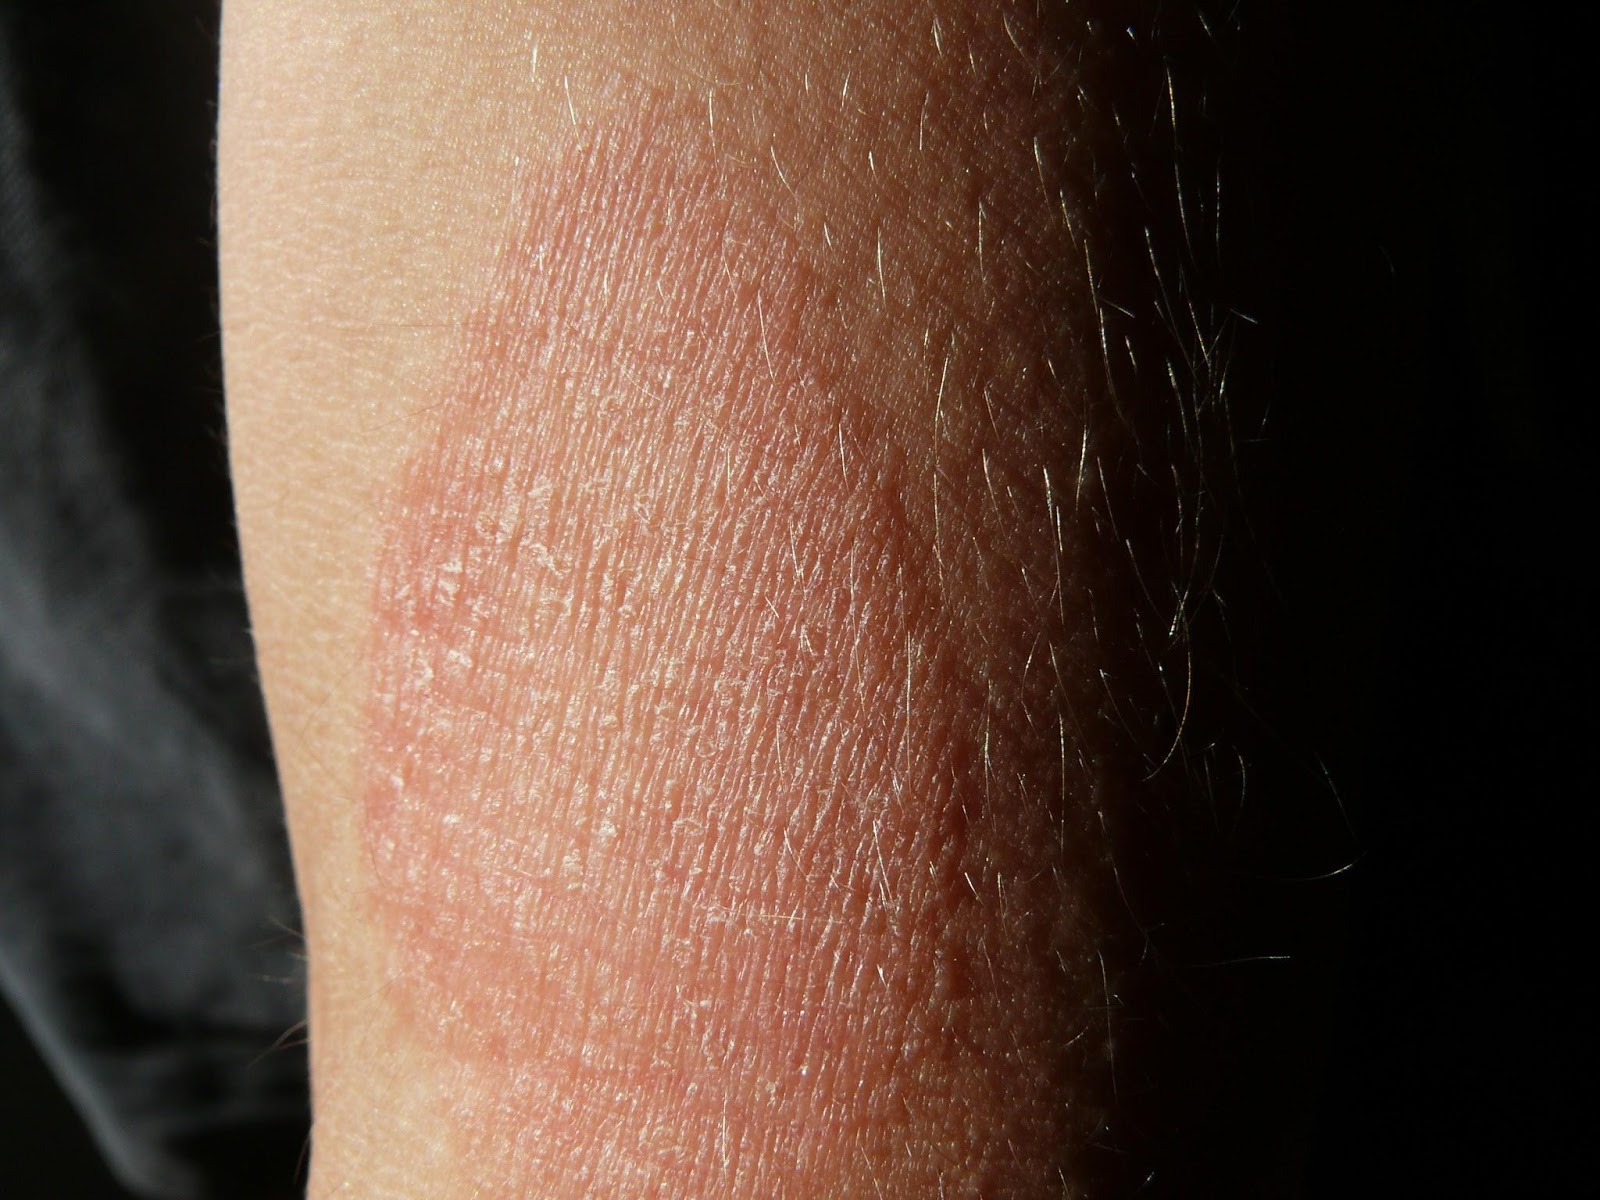 Inflamed eczema outbreak